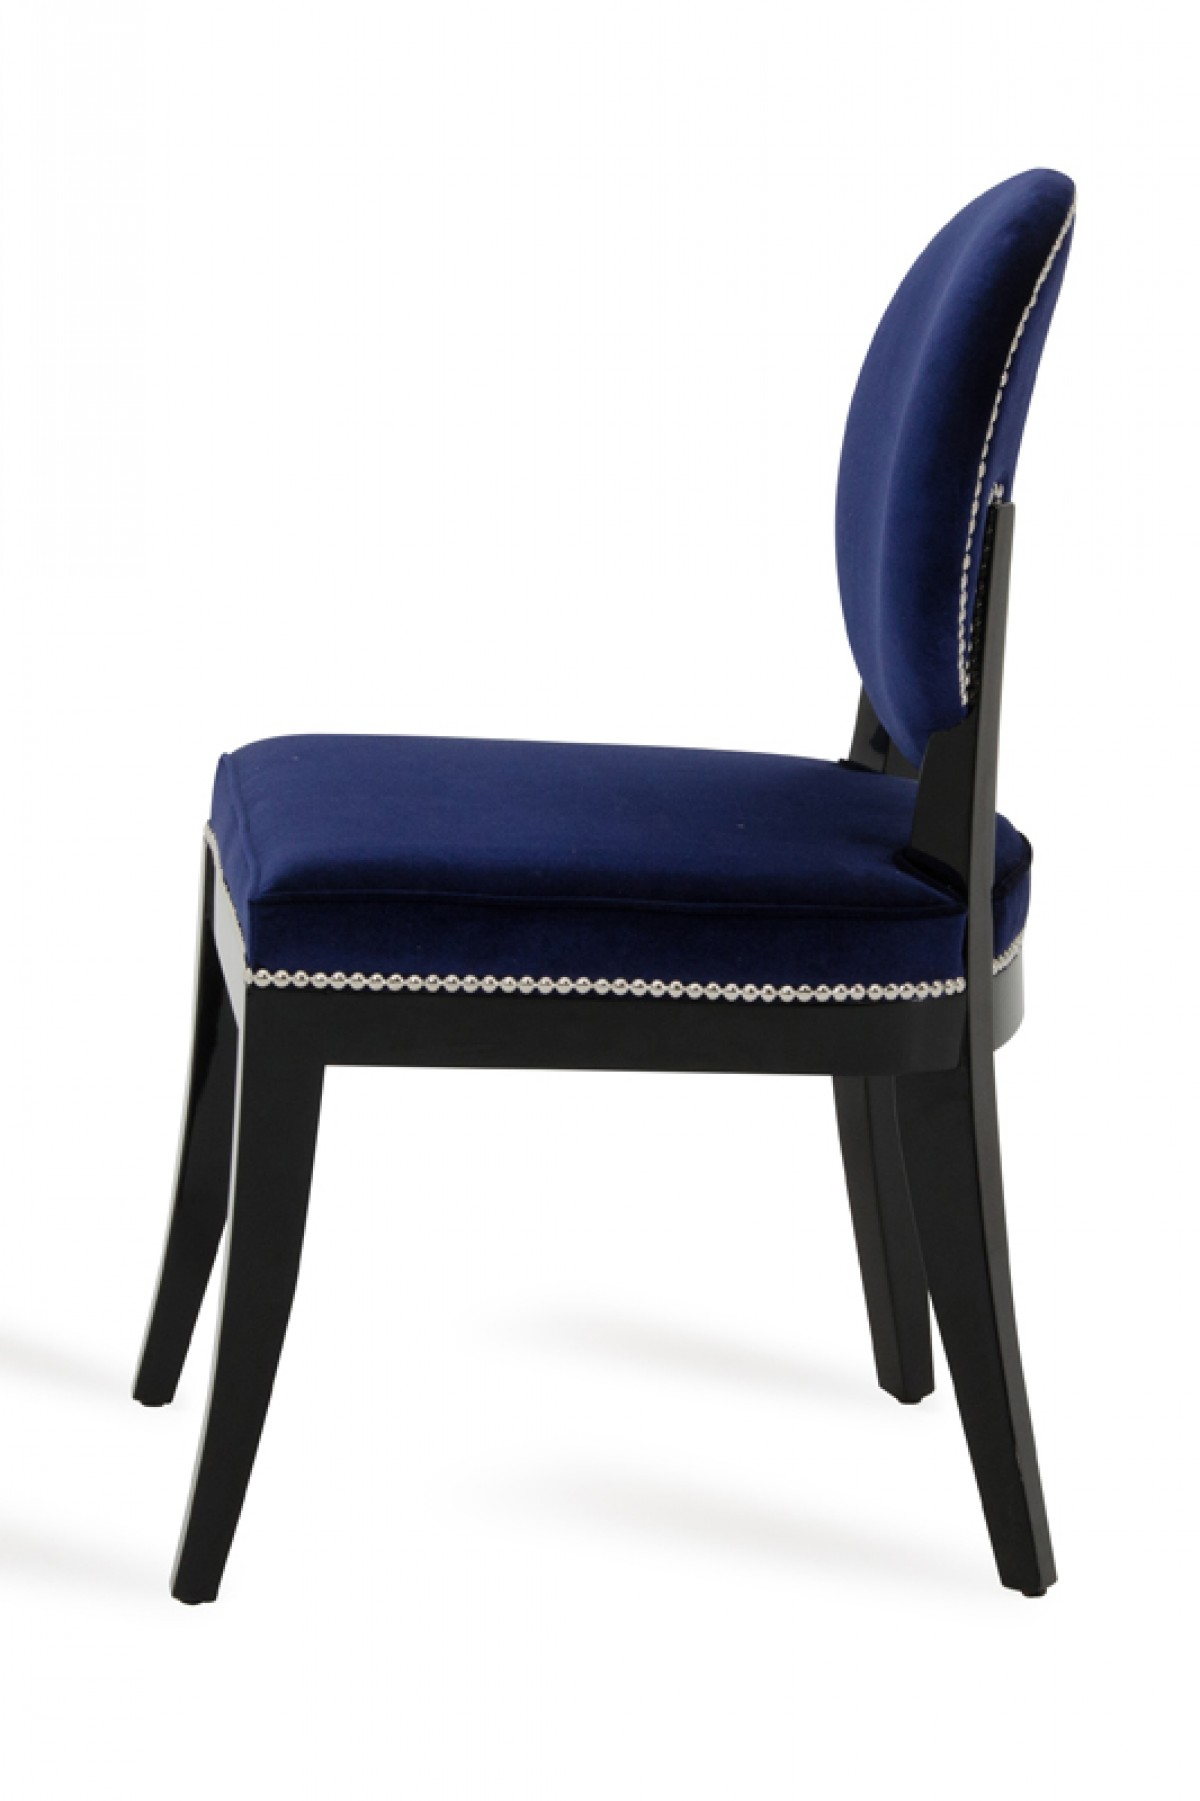 Isabella Modern Blue Dining Chair Set of 2 : ak011 272861isabellablue12 16 2016hr04 from www.vigfurniture.com size 1200 x 1801 jpeg 114kB